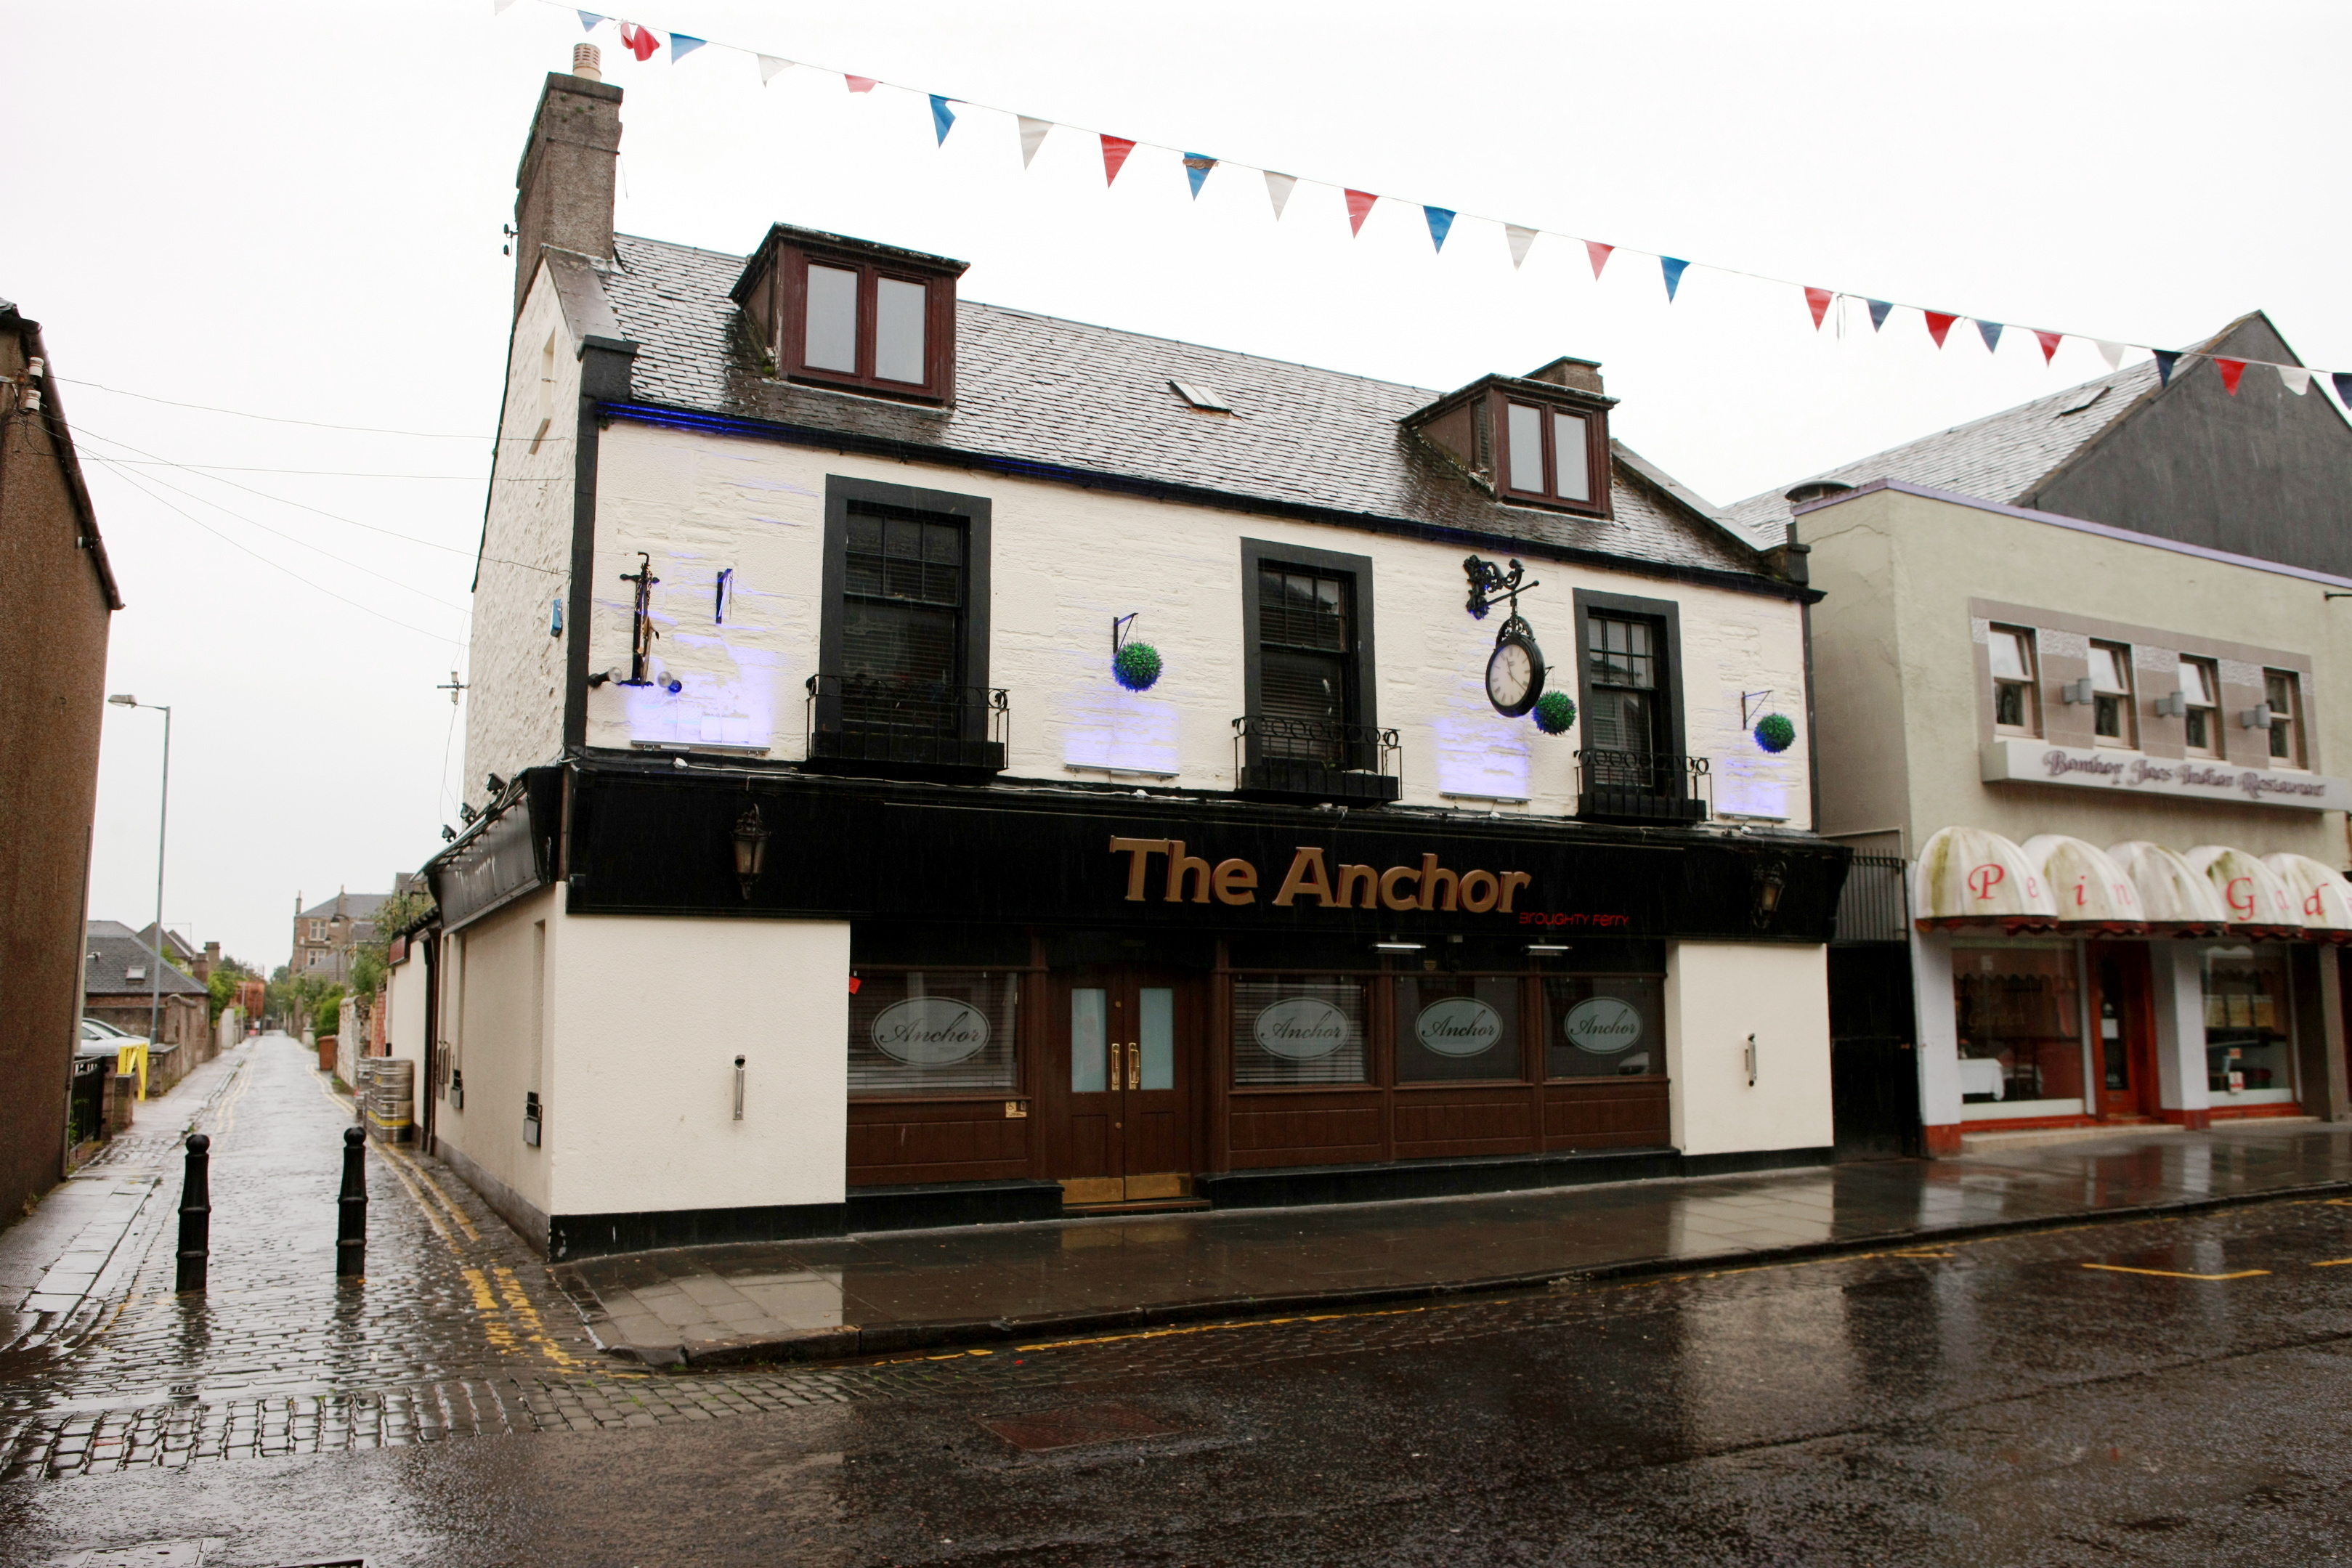 The Anchor in Broughty Ferry